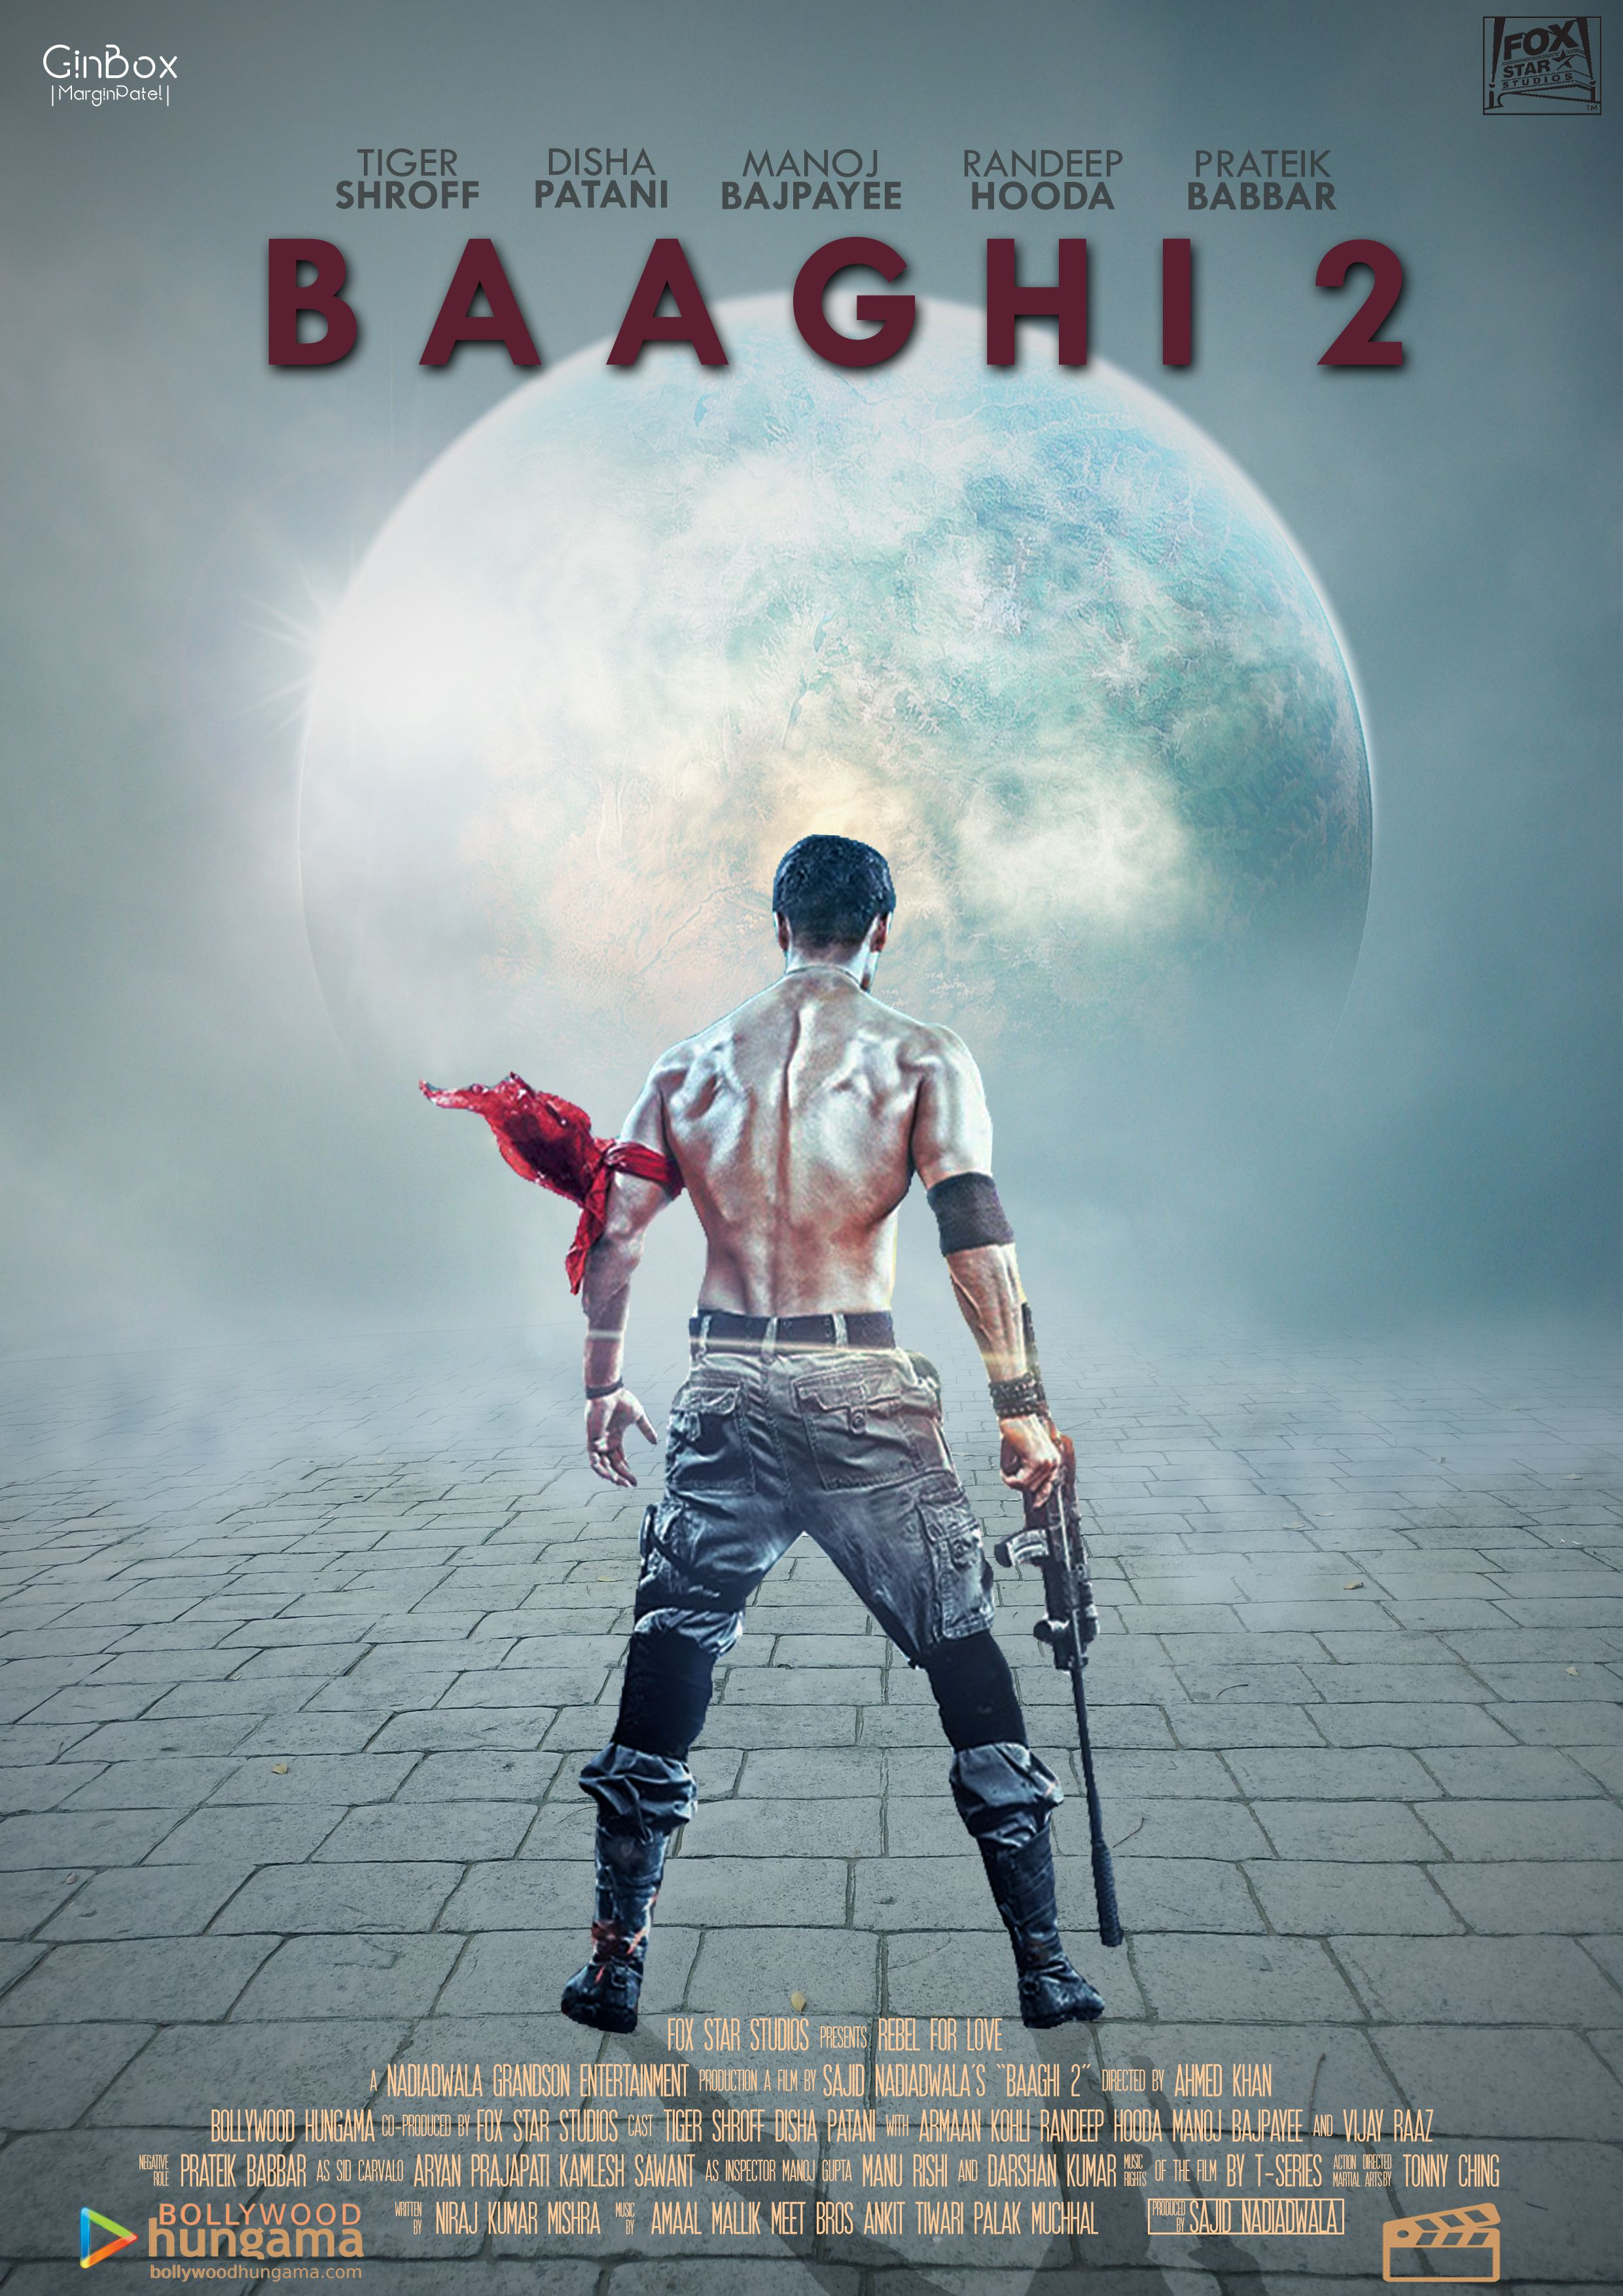 Baaghi 2 Movies To Watch Online Full Movies Download Hindi Movies